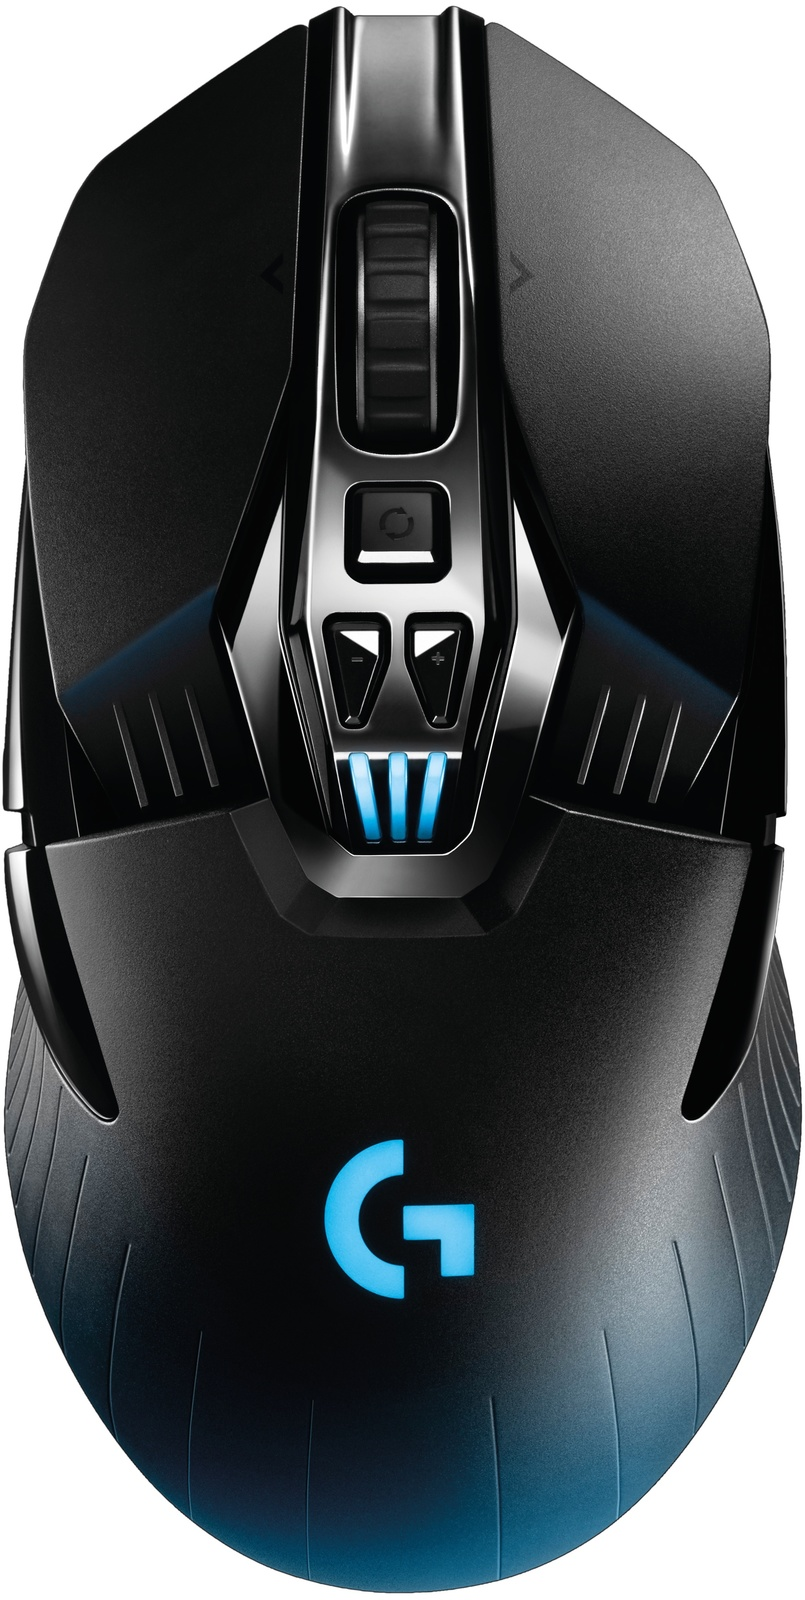 Logitech G900 RGB Wireless Gaming Mouse for  image